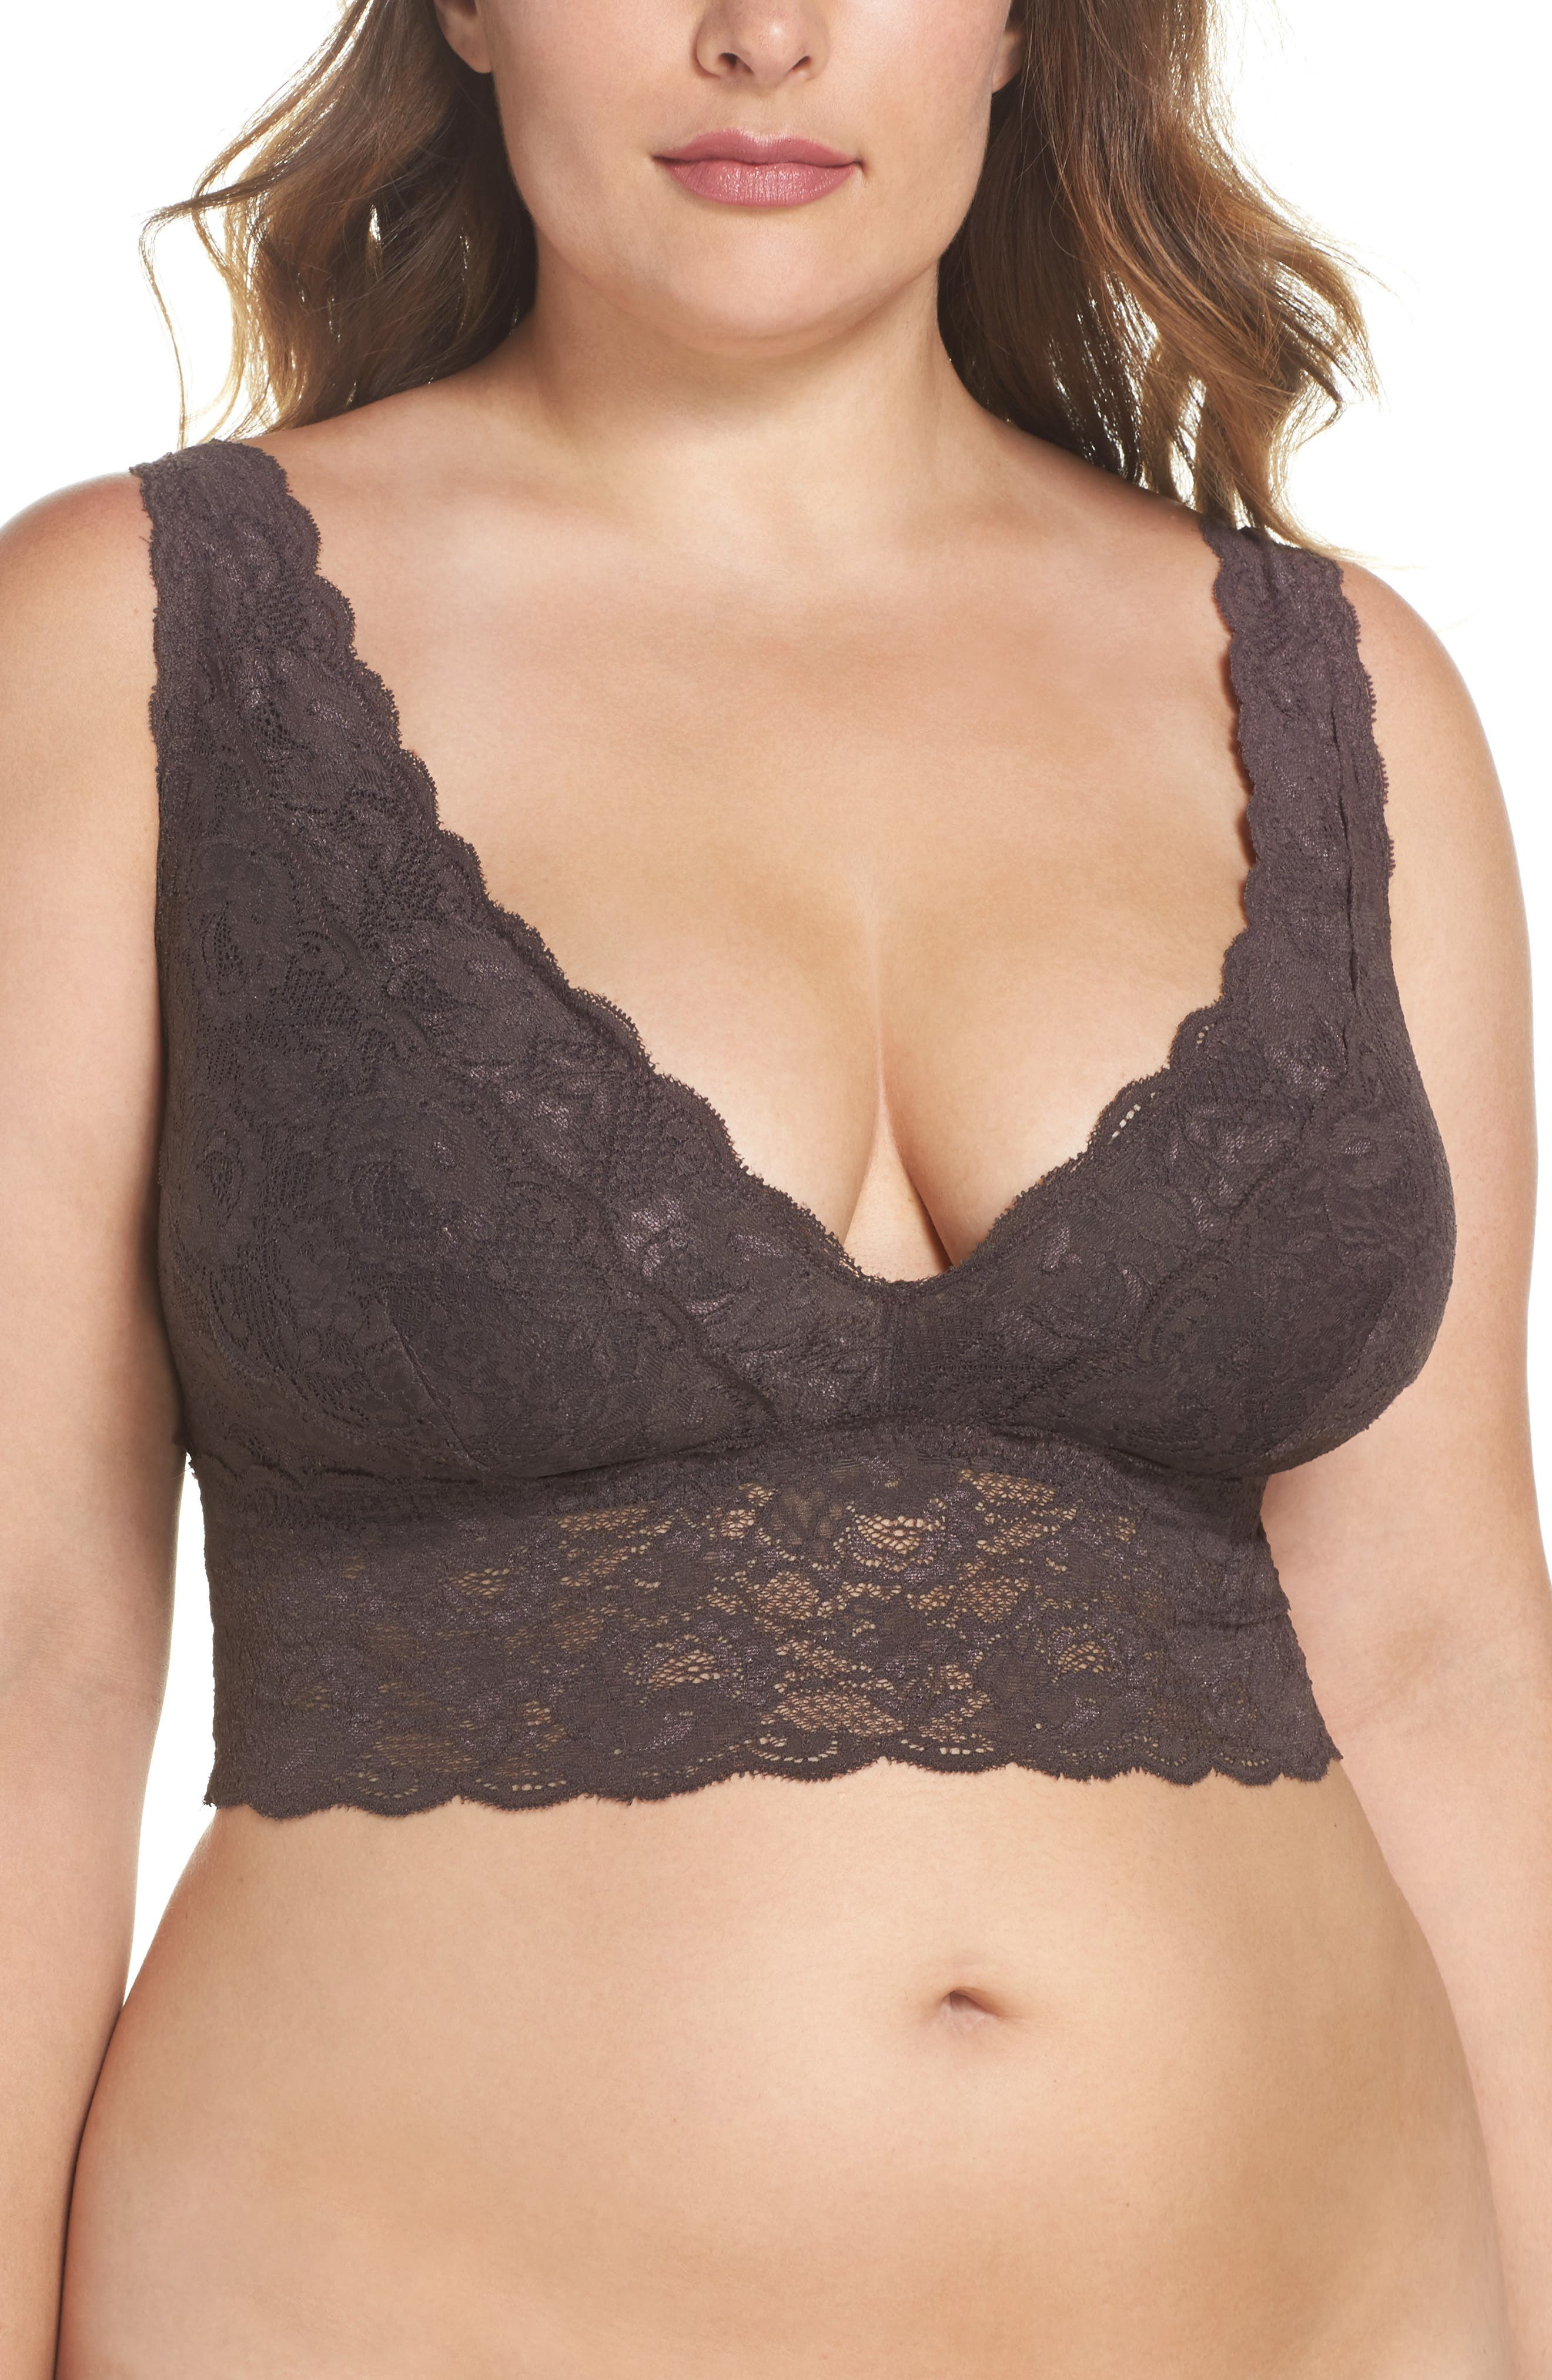 Alternate Image 1 Selected - Cosabella Never Say Never Plungie Lace Longline Bralette (Plus Size)